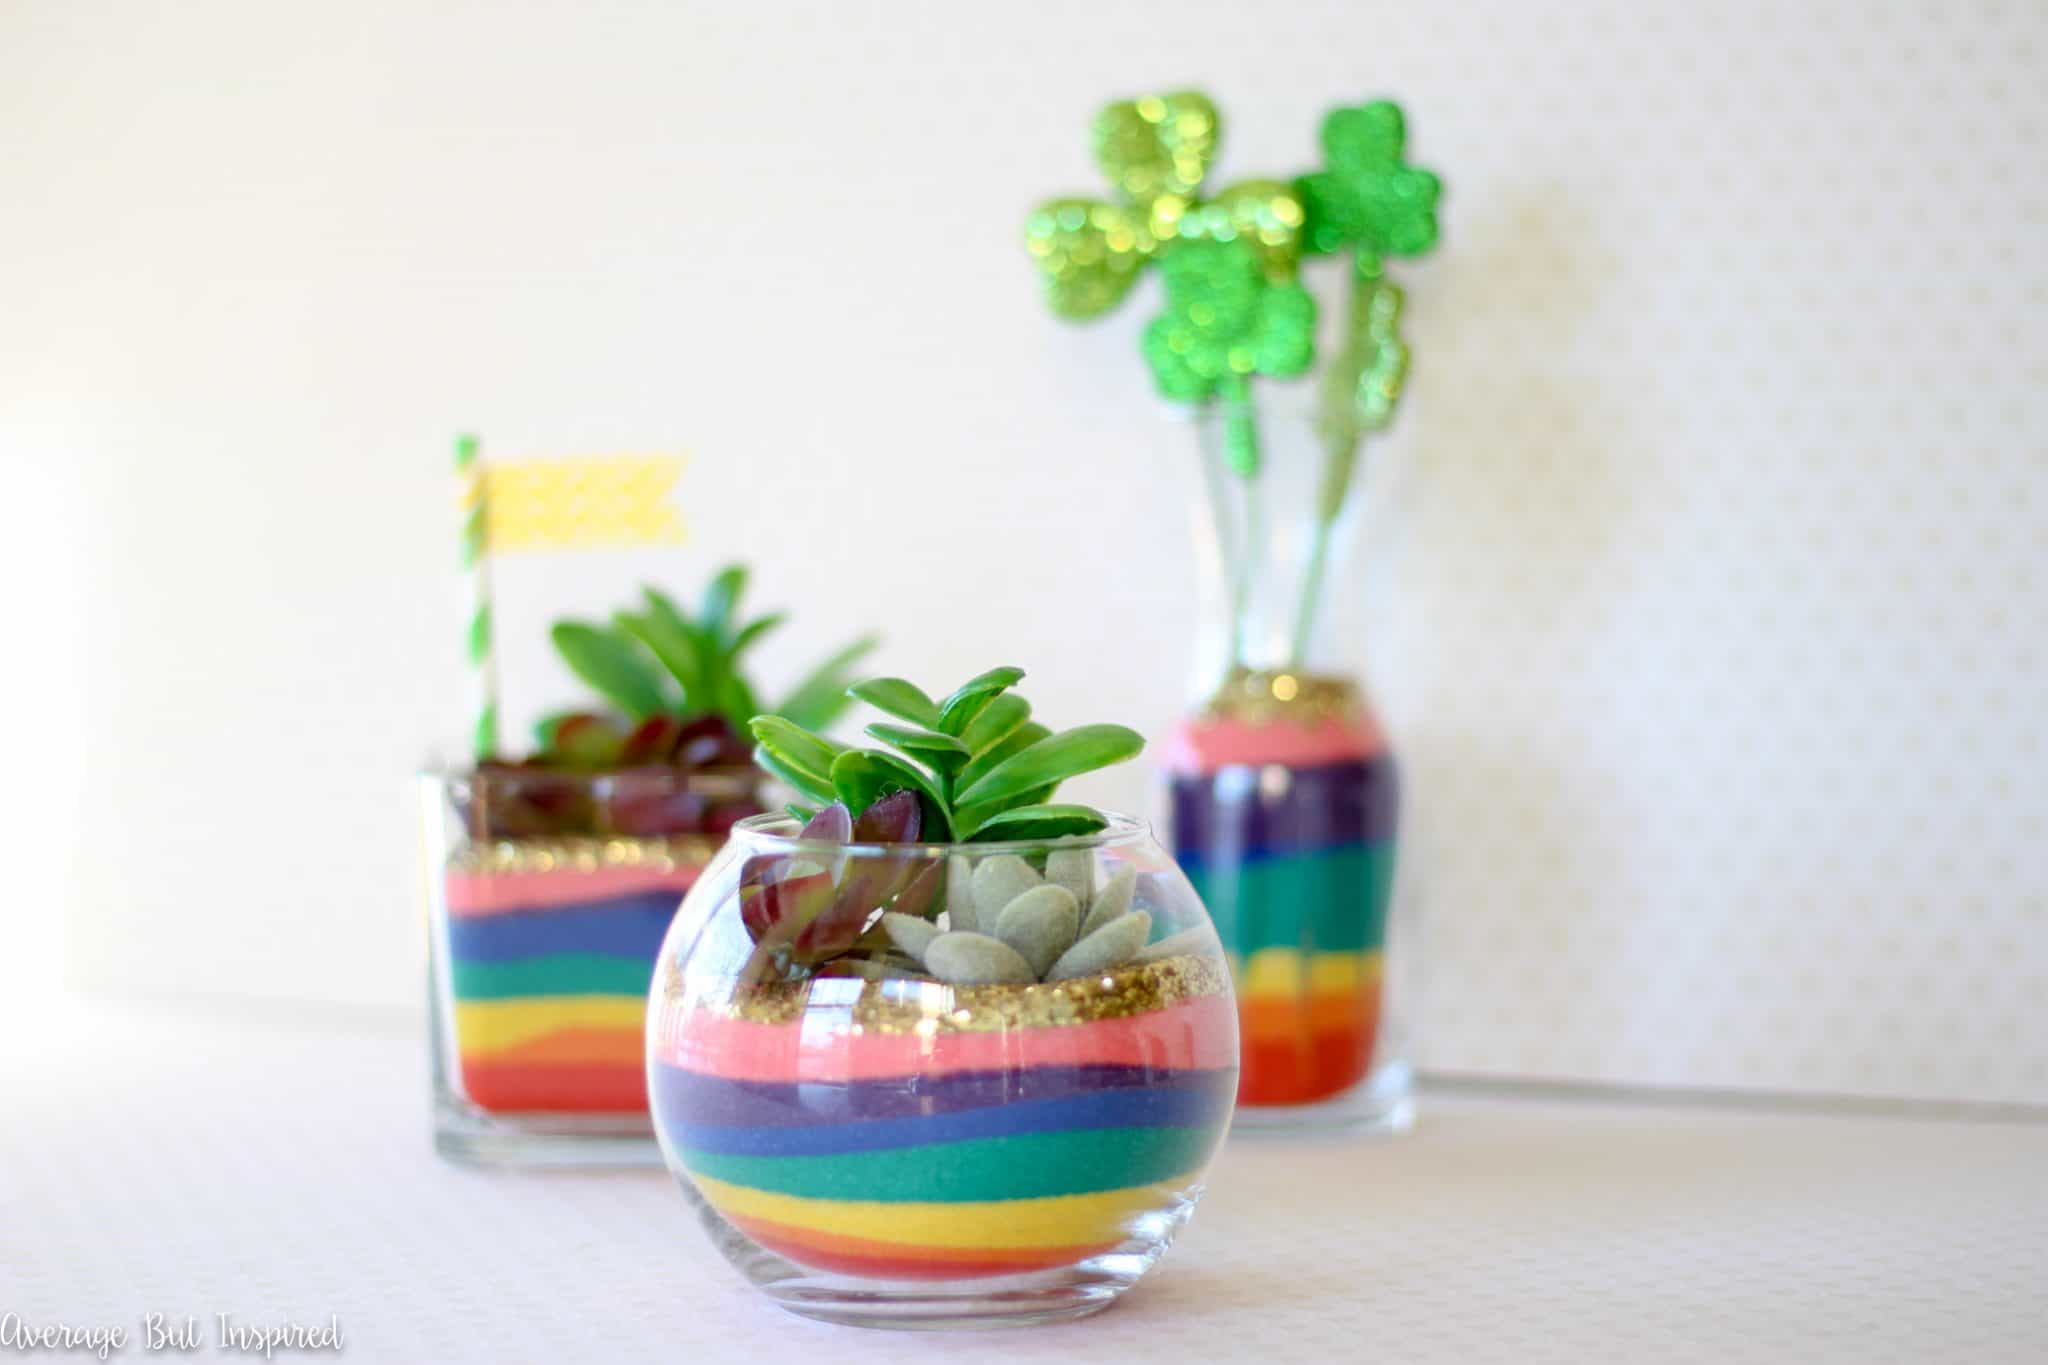 These Rainbow Sand Art Terrariums are sure to put a smile on anyone's face! Add a lot of color to glass vases with colored sand in rainbow hues! A perfect St. Patrick's Day craft for any age!